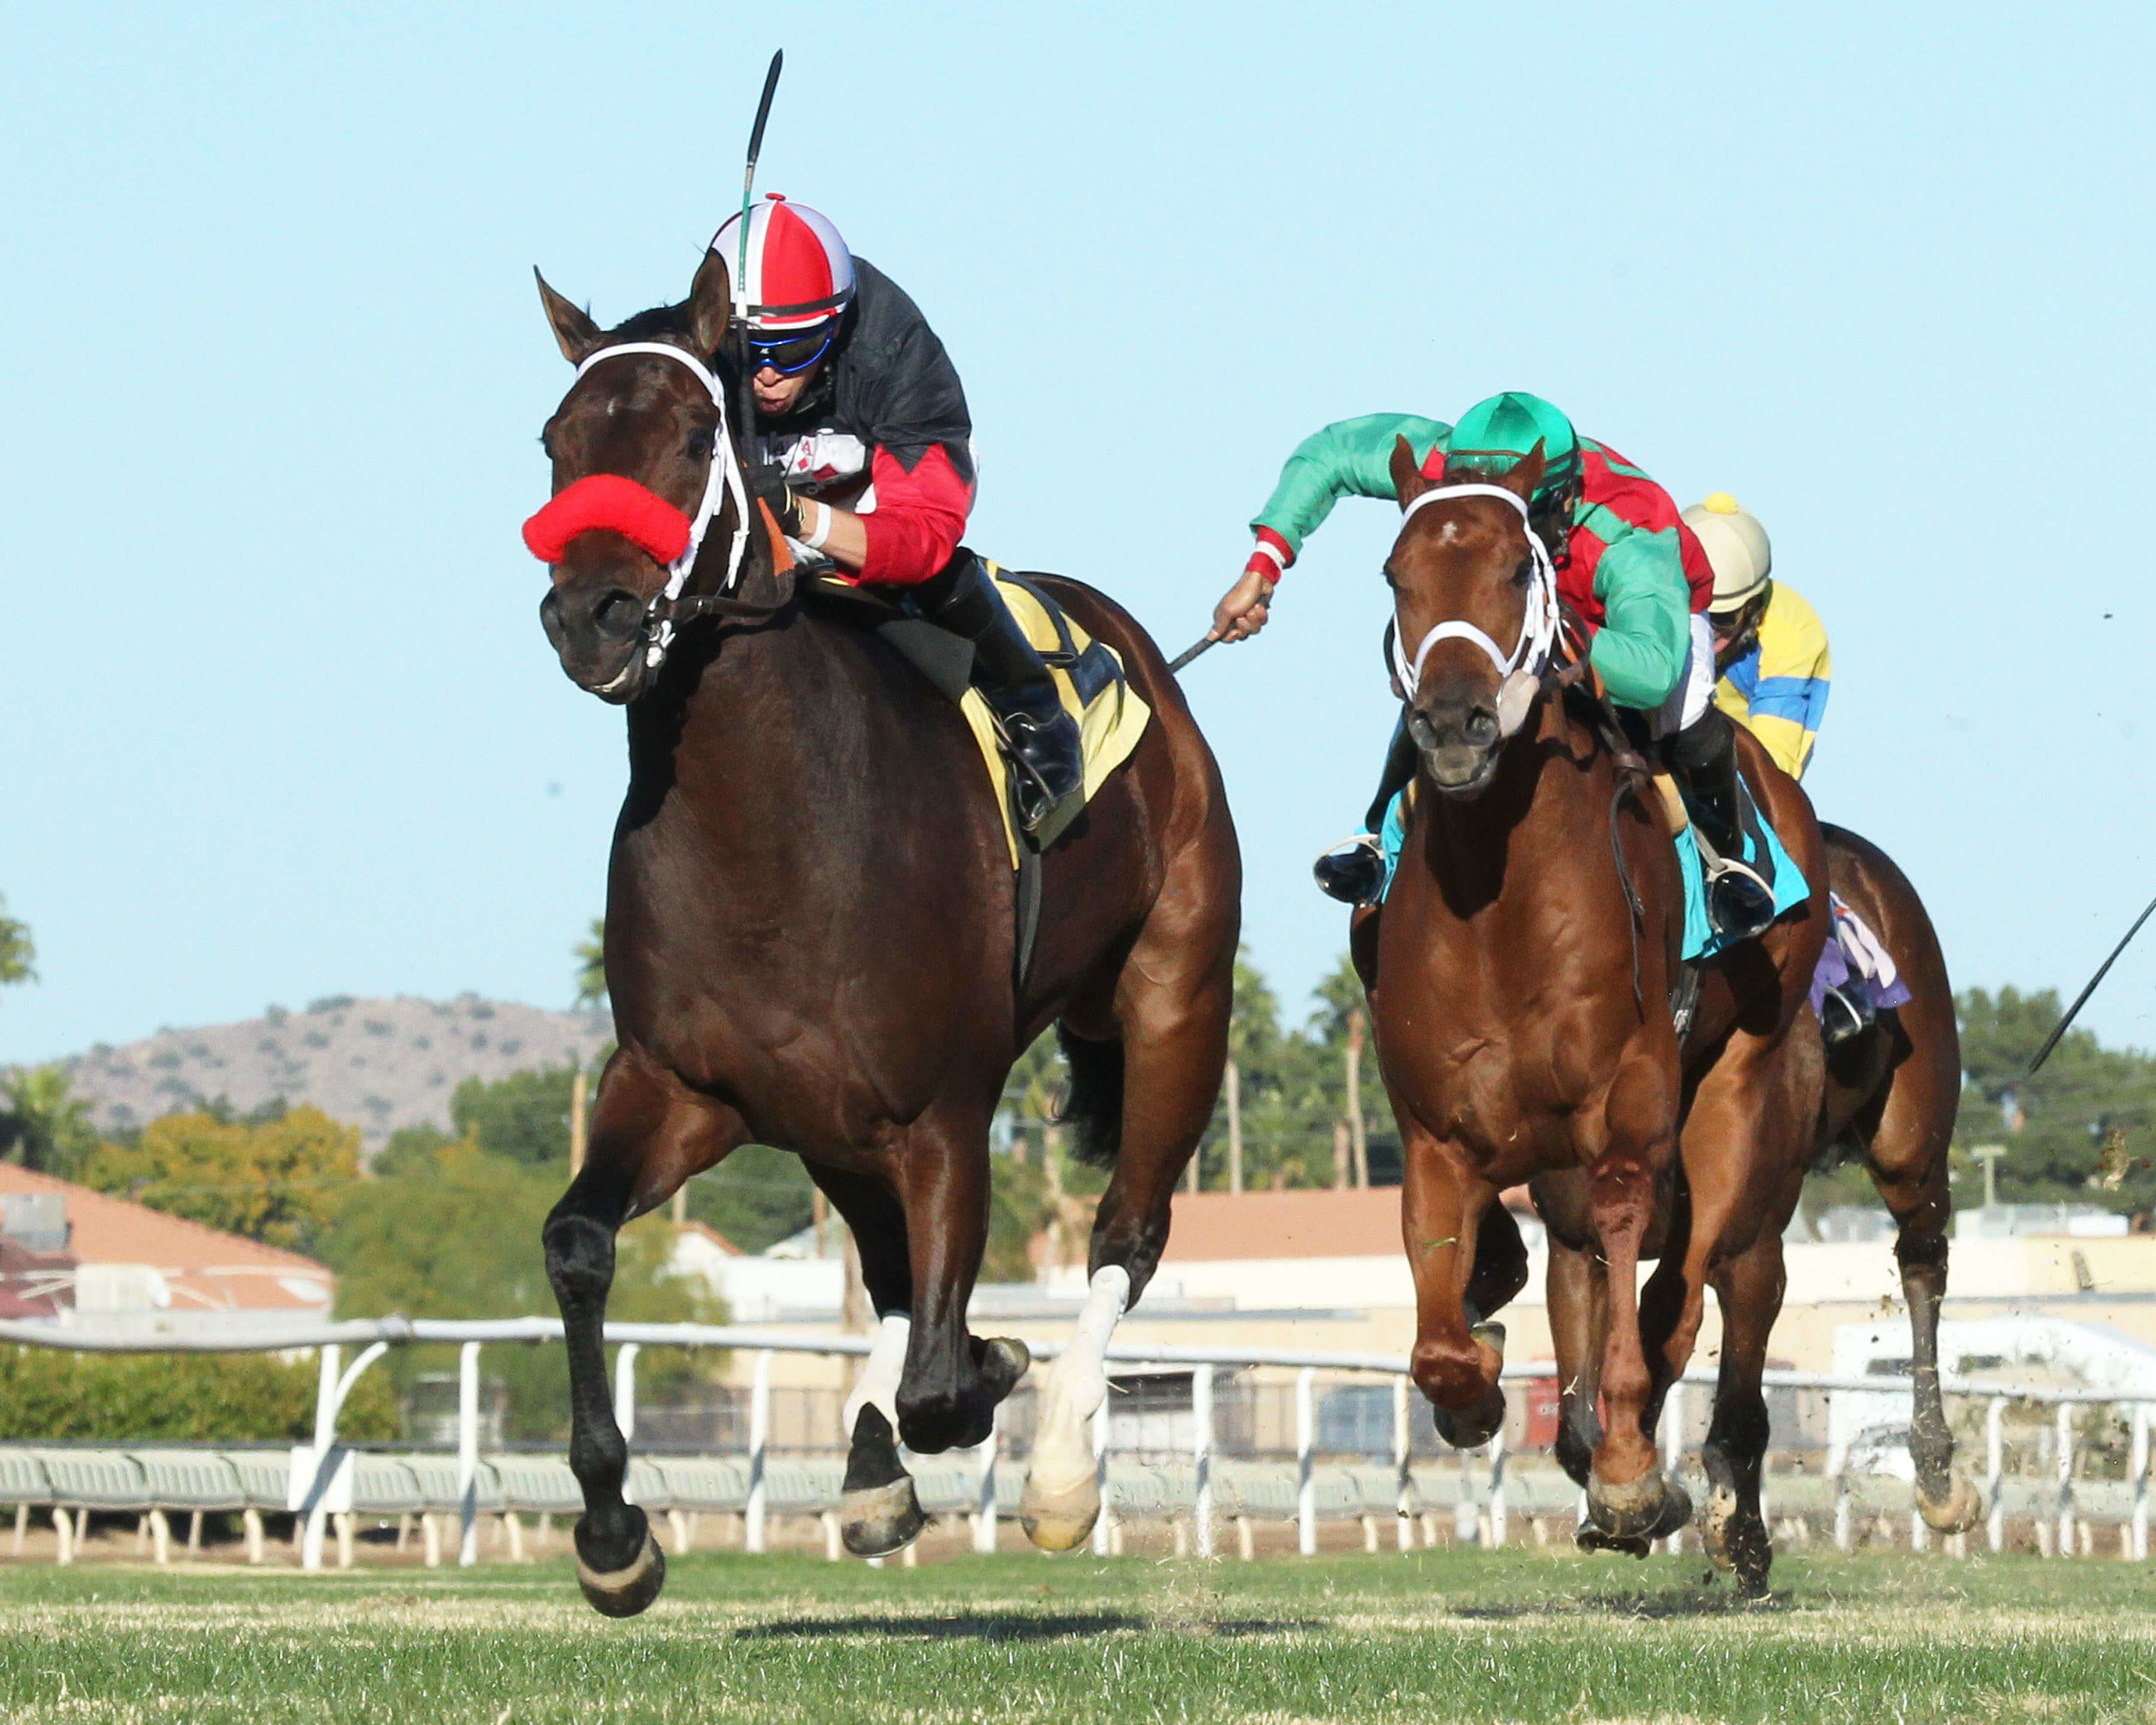 Storm Power - Walter R Cluer Memorial Stakes - 11-29-14 - R07 - TUP - Under Rail Finish (1).jpg